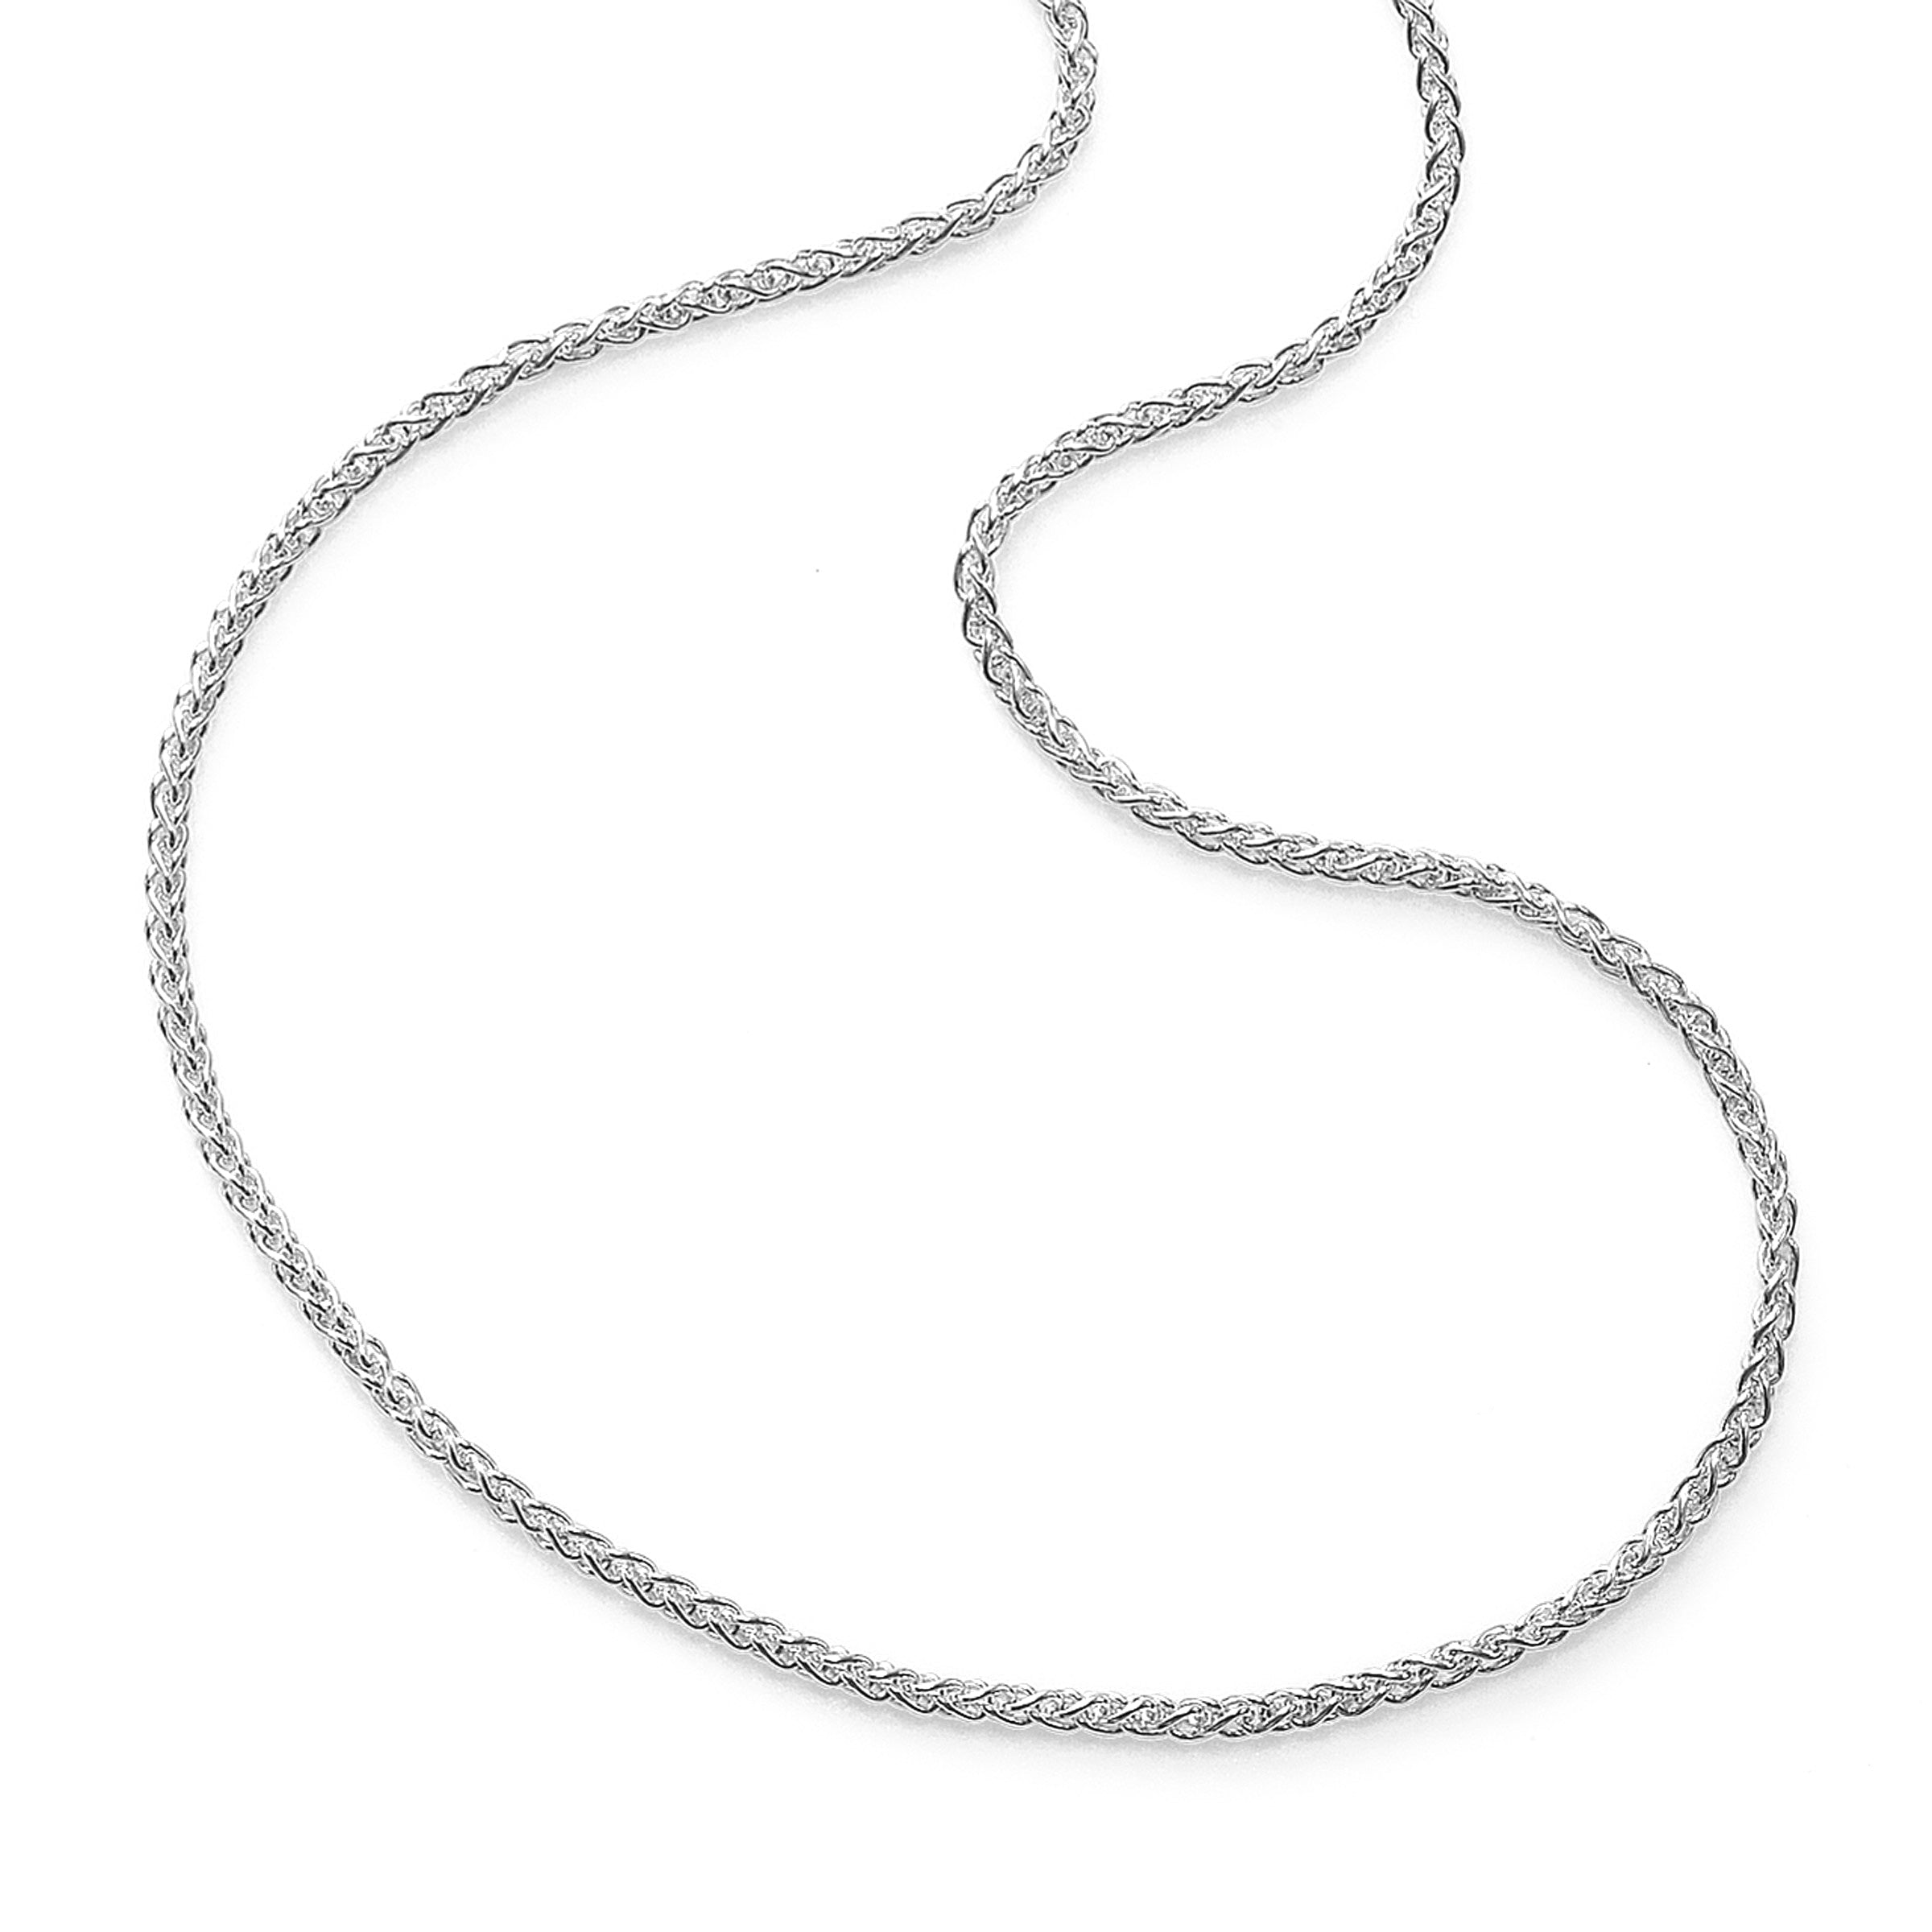 Wheat Chain, 24 Inches, 14K White Gold